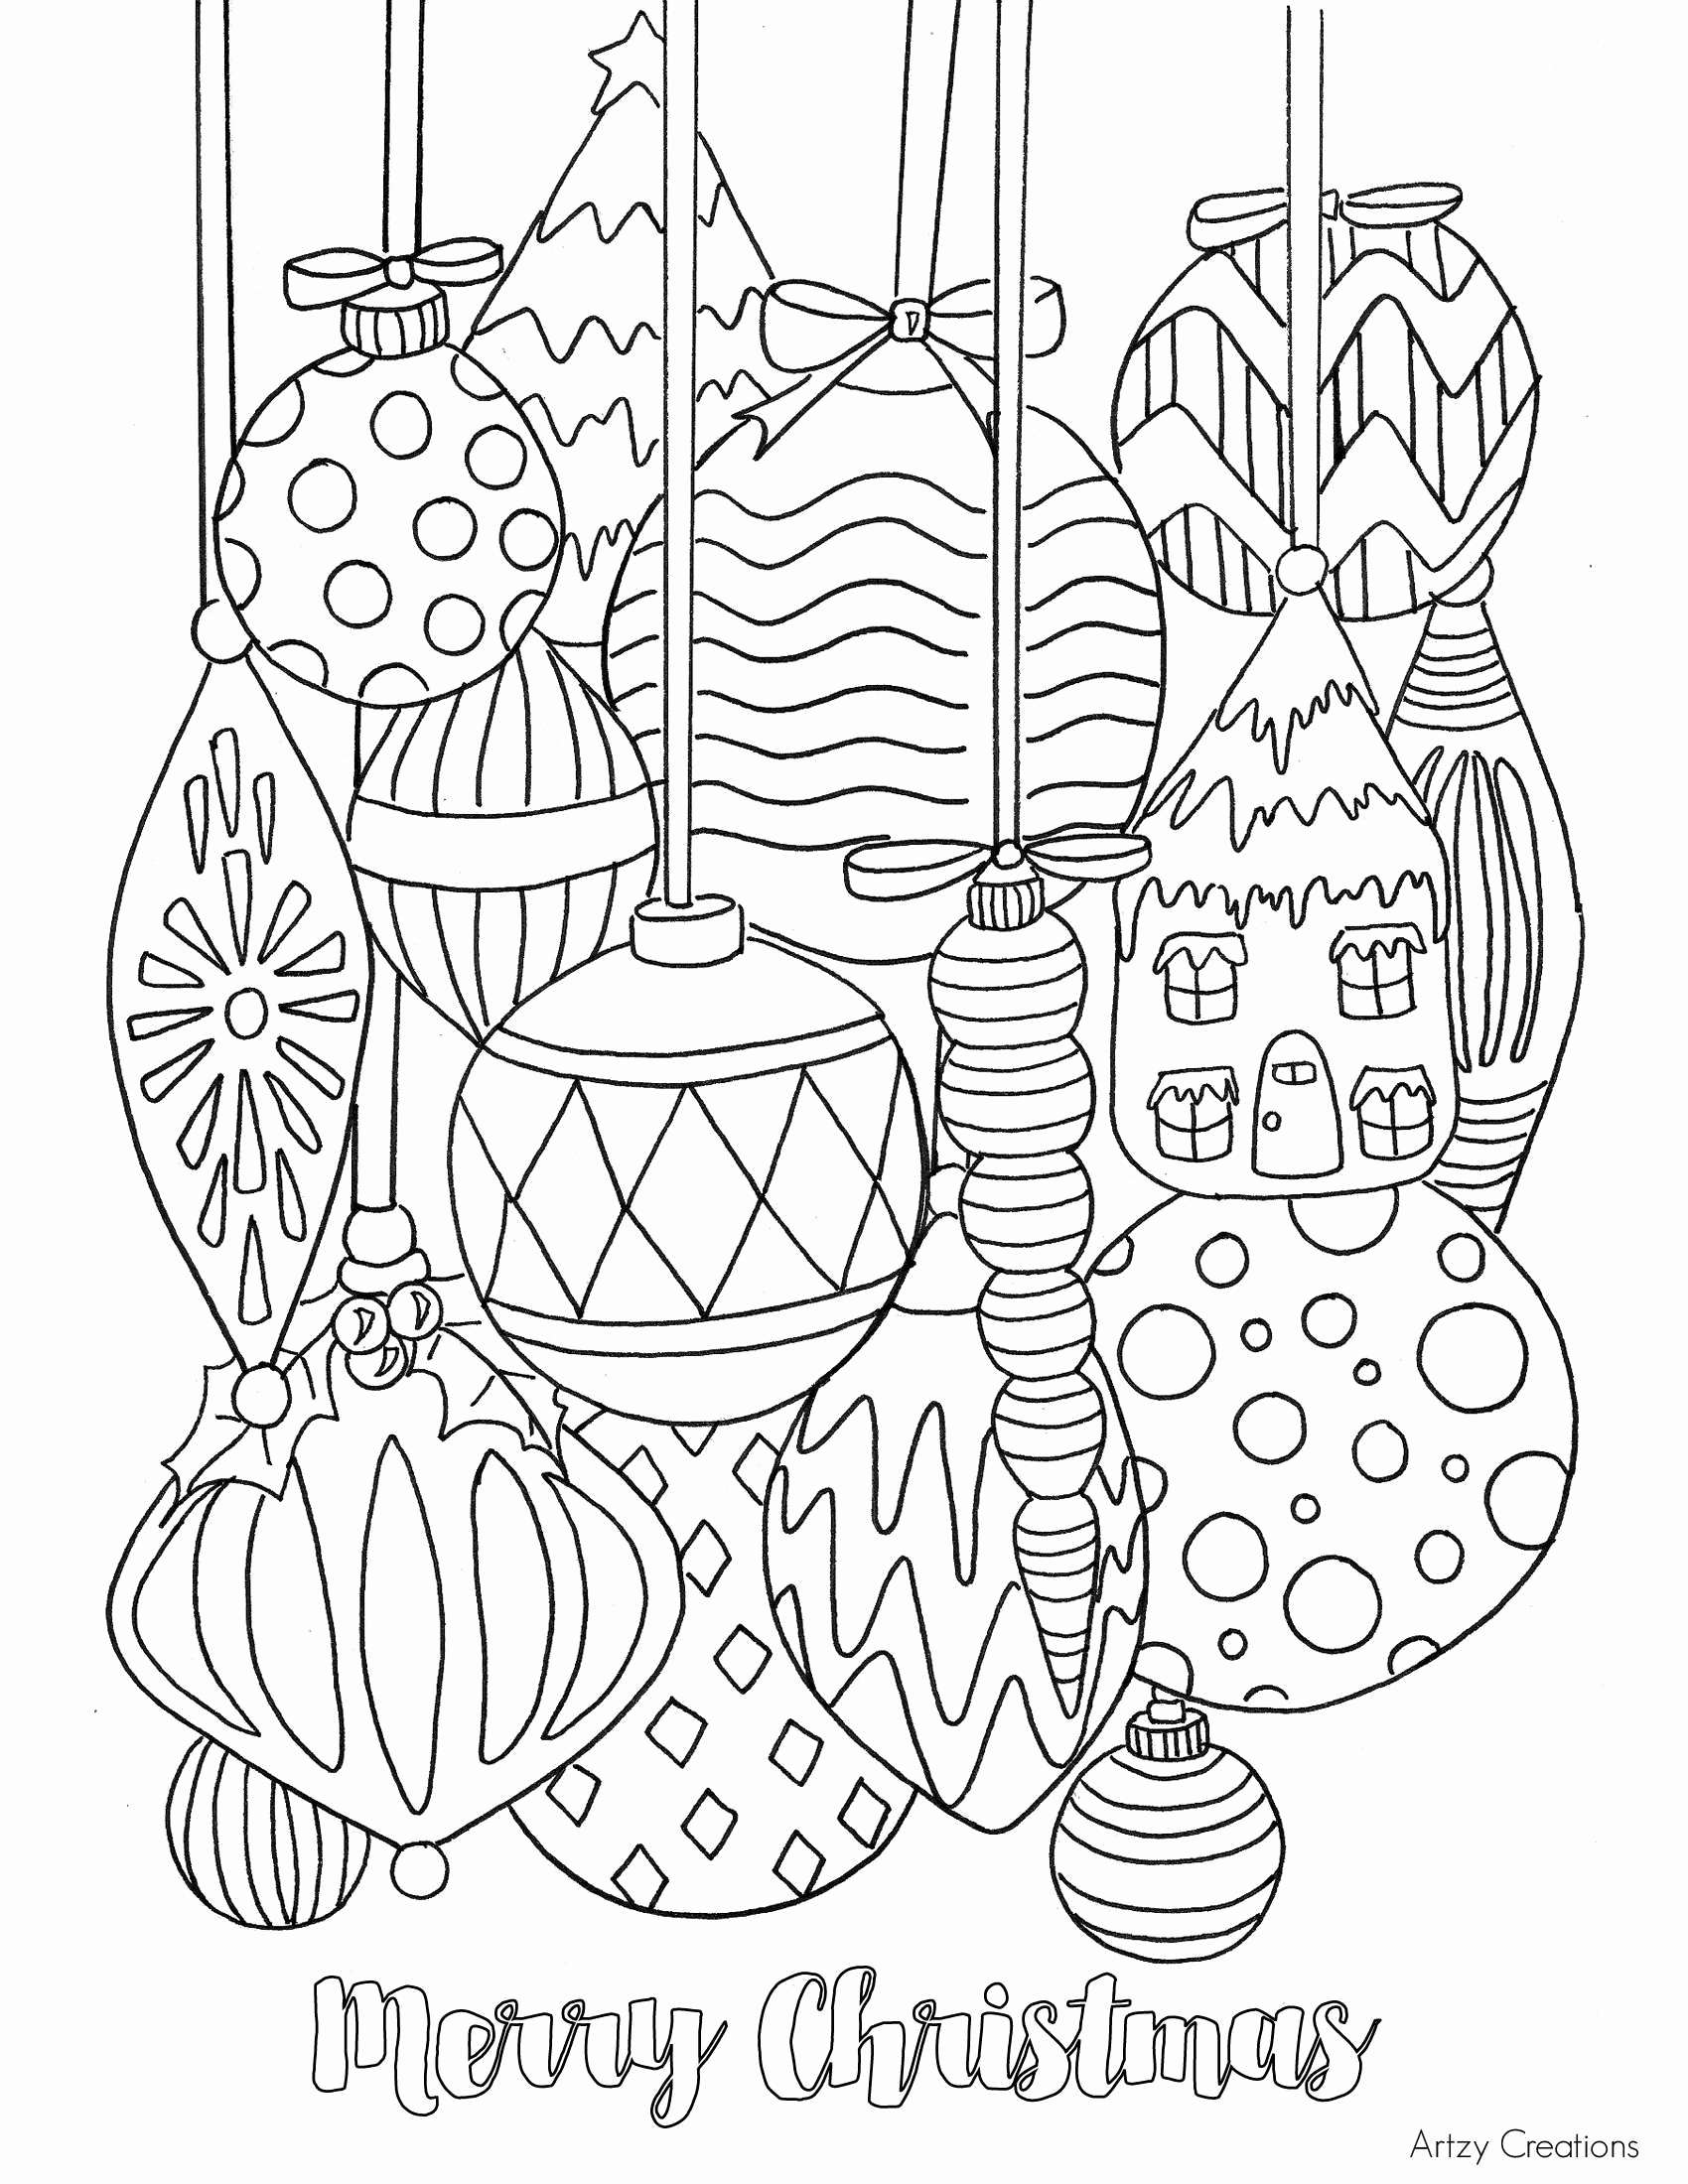 Christmas Reindeer Coloring Pages With Free Printable Holiday